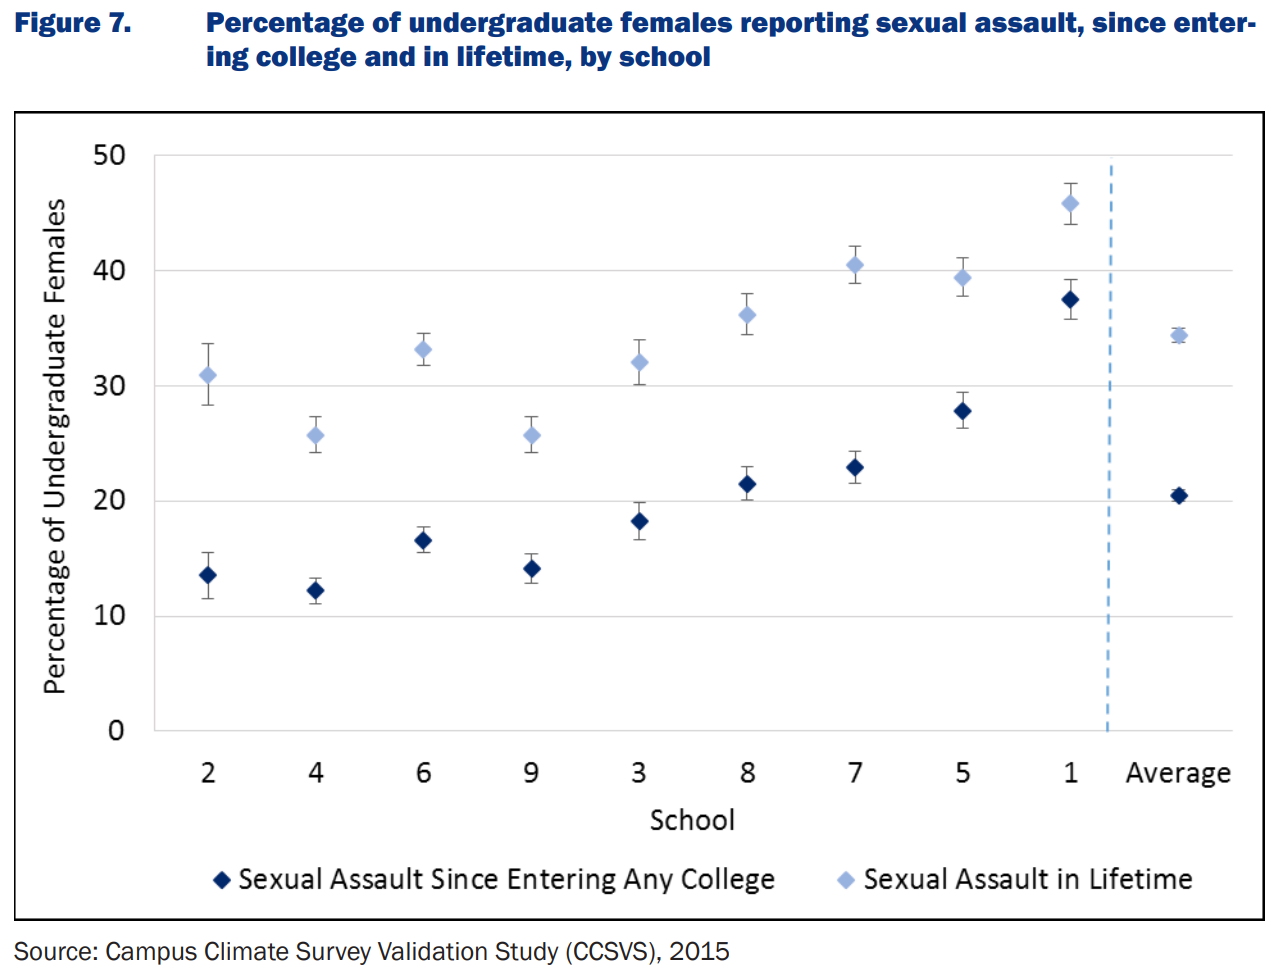 Sexual Assault Female in Lifetime SSCVS.PNG